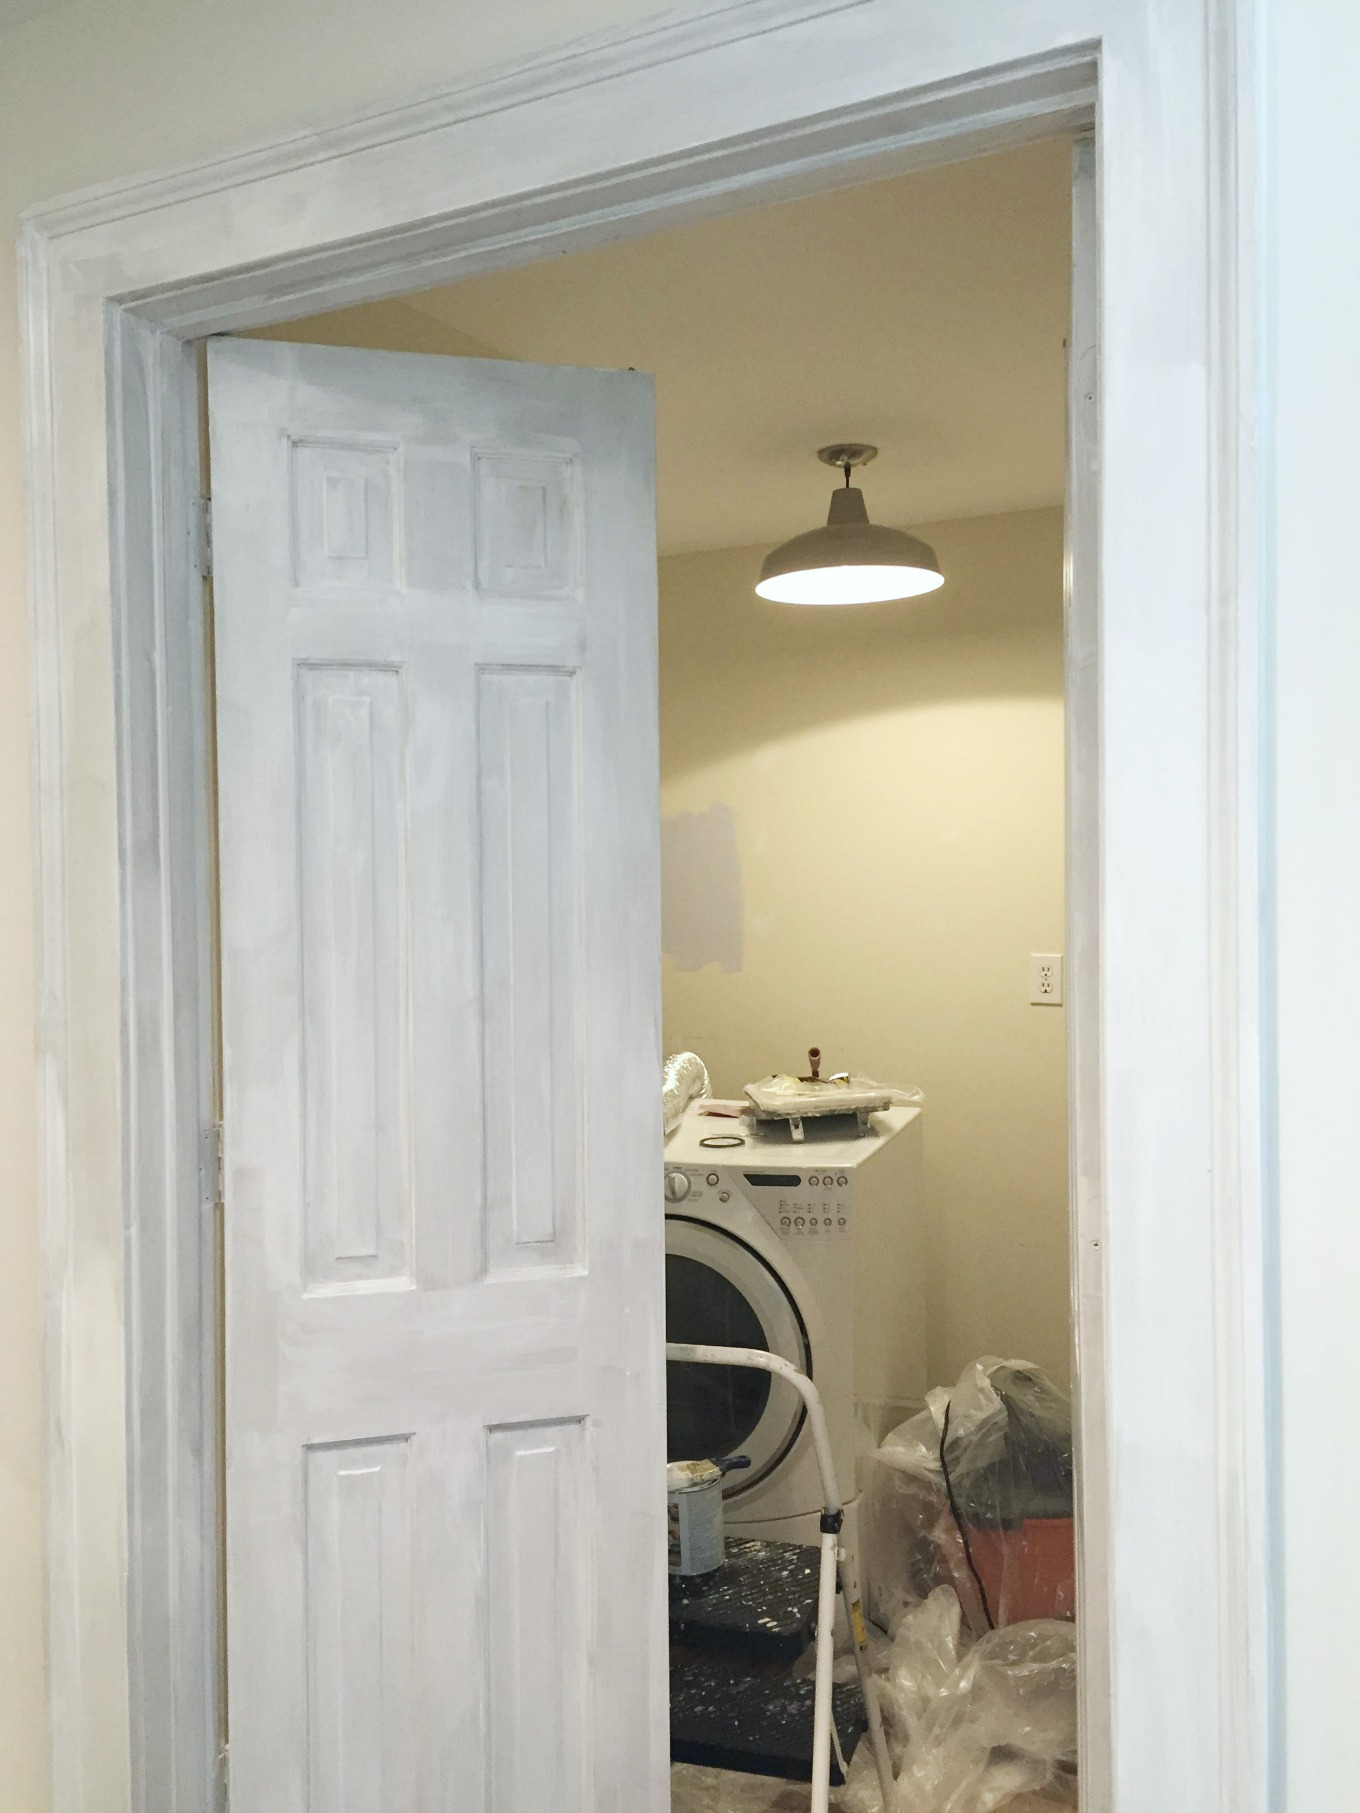 Laundry doors primed before painting white in laundry room reveal - thediybungalow.com